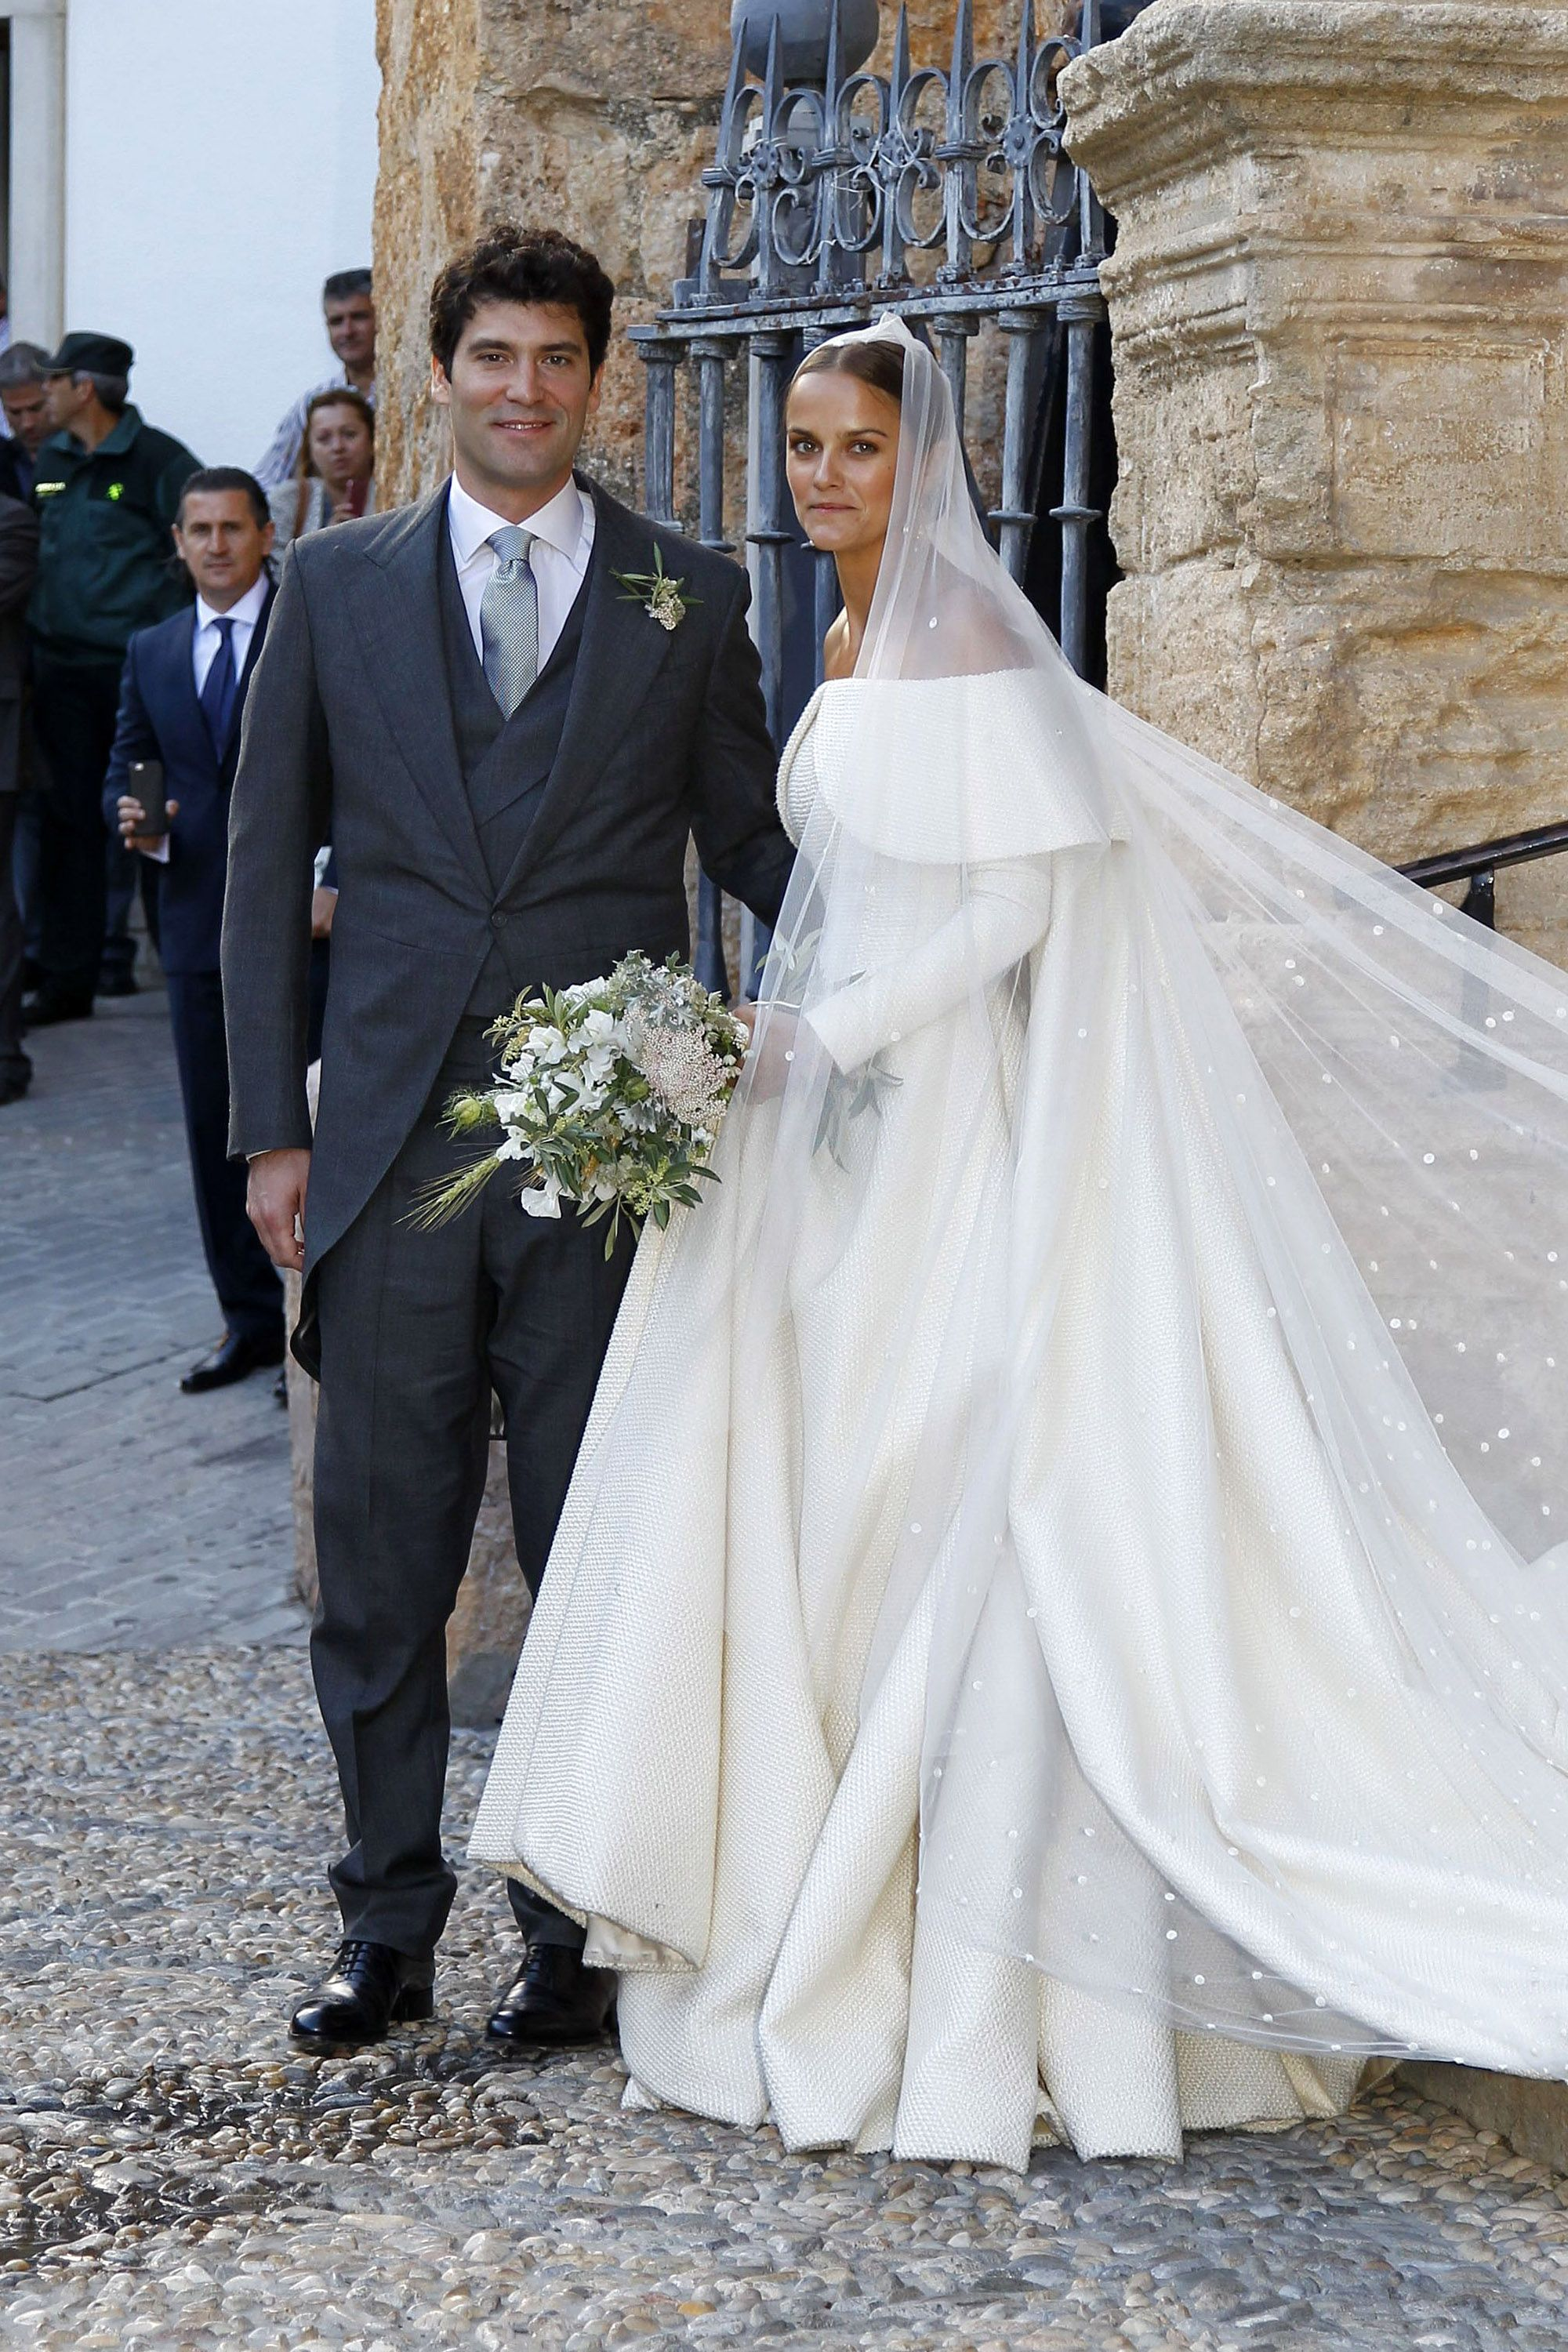 b7b0e1f9d32 33 Best Royal Weddings of All Time - Royal Family Weddings Throughout  History